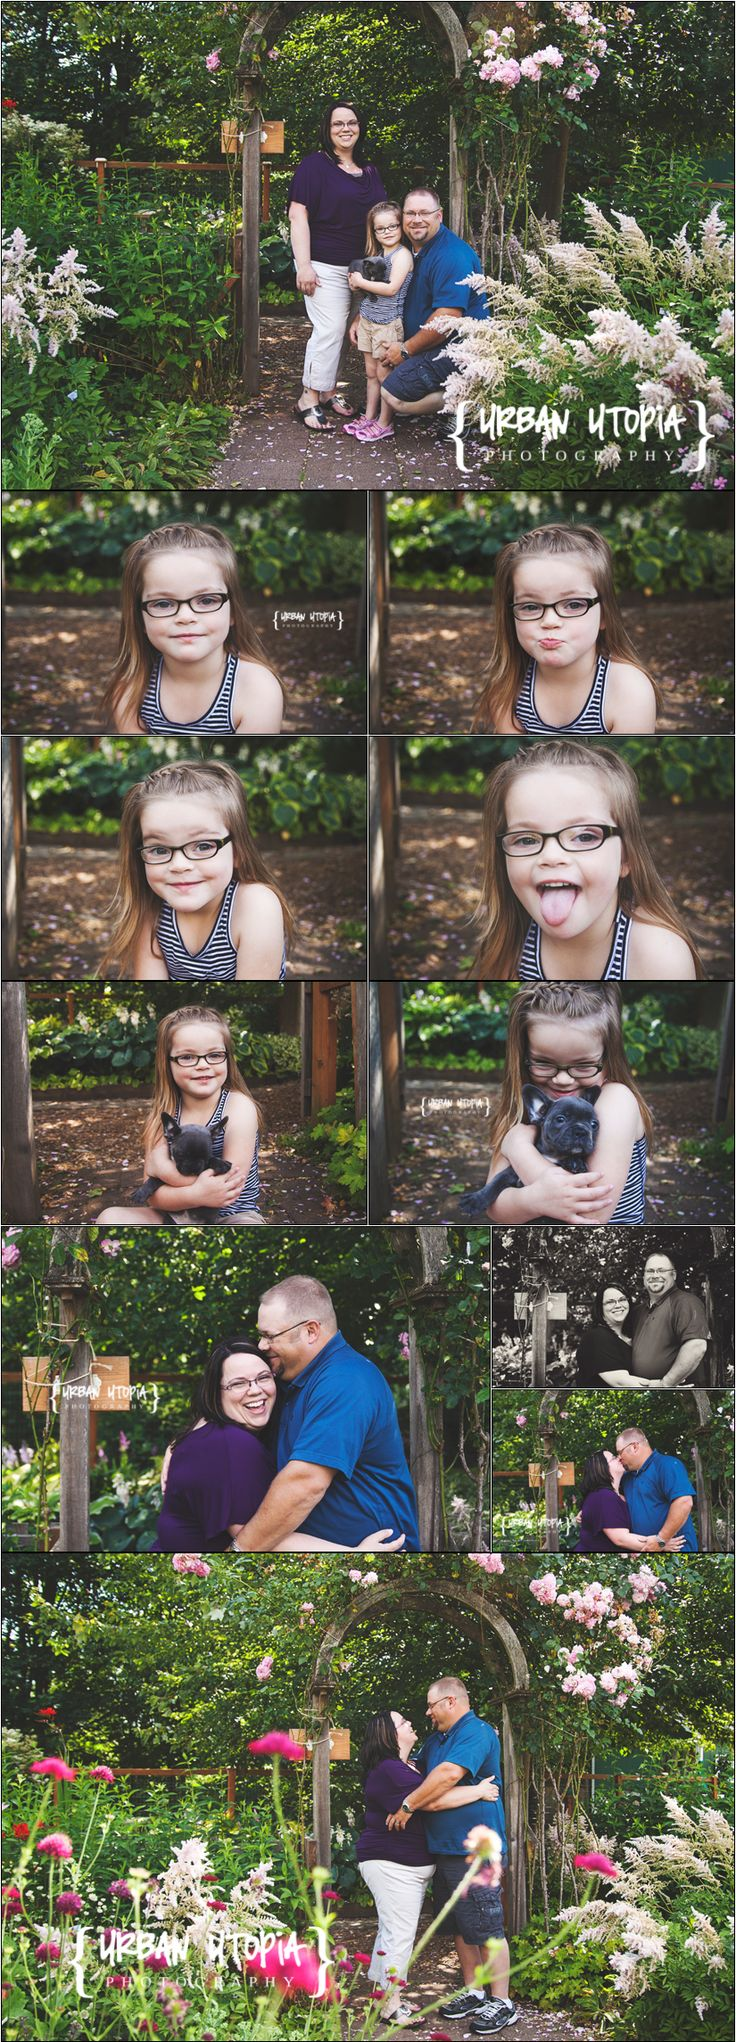 www.urbanutopiaphotography.com Sessions in Washington, San Diego area, San Francisco Bay area and beyond! French Bulldog, BulldogSession, FamilySessionWithPet, MarysvilleFamilySession, SeattleFamilyPhotographer